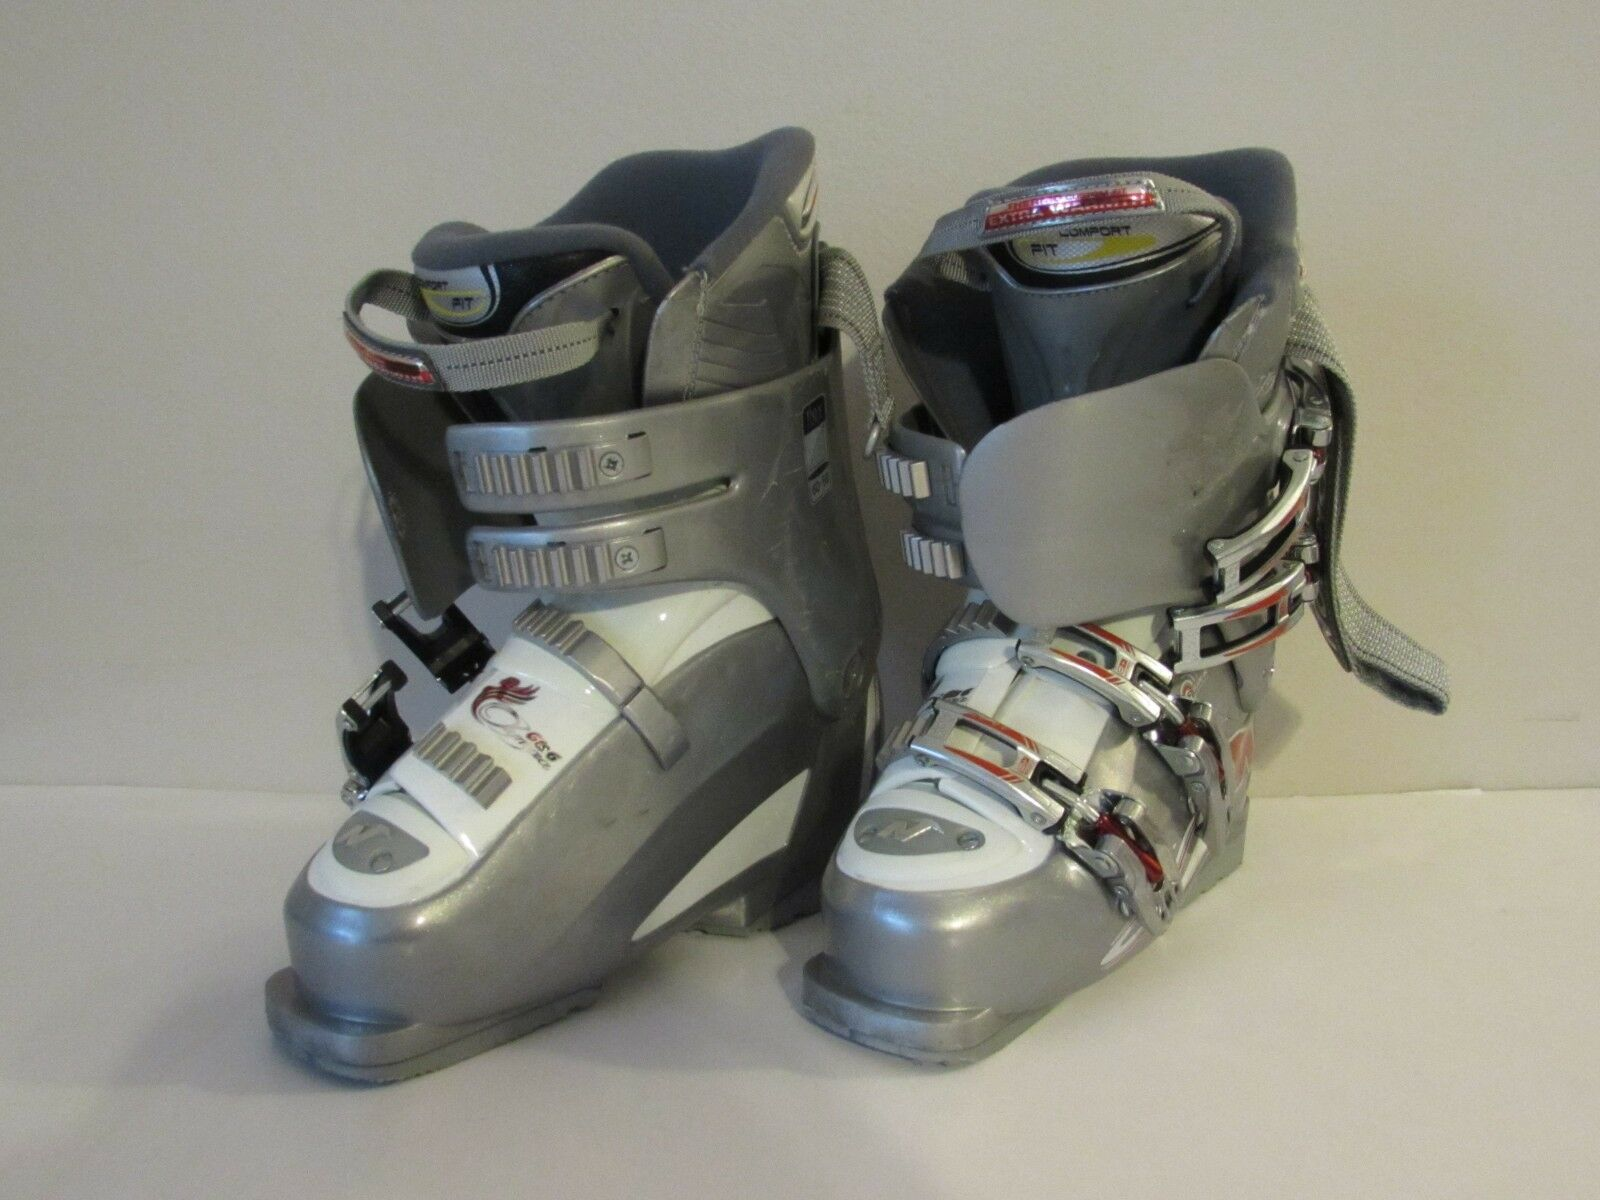 Nordica GTS 6 Olympia Women's Ski Boots Size 24-24.5 285mm   exciting promotions